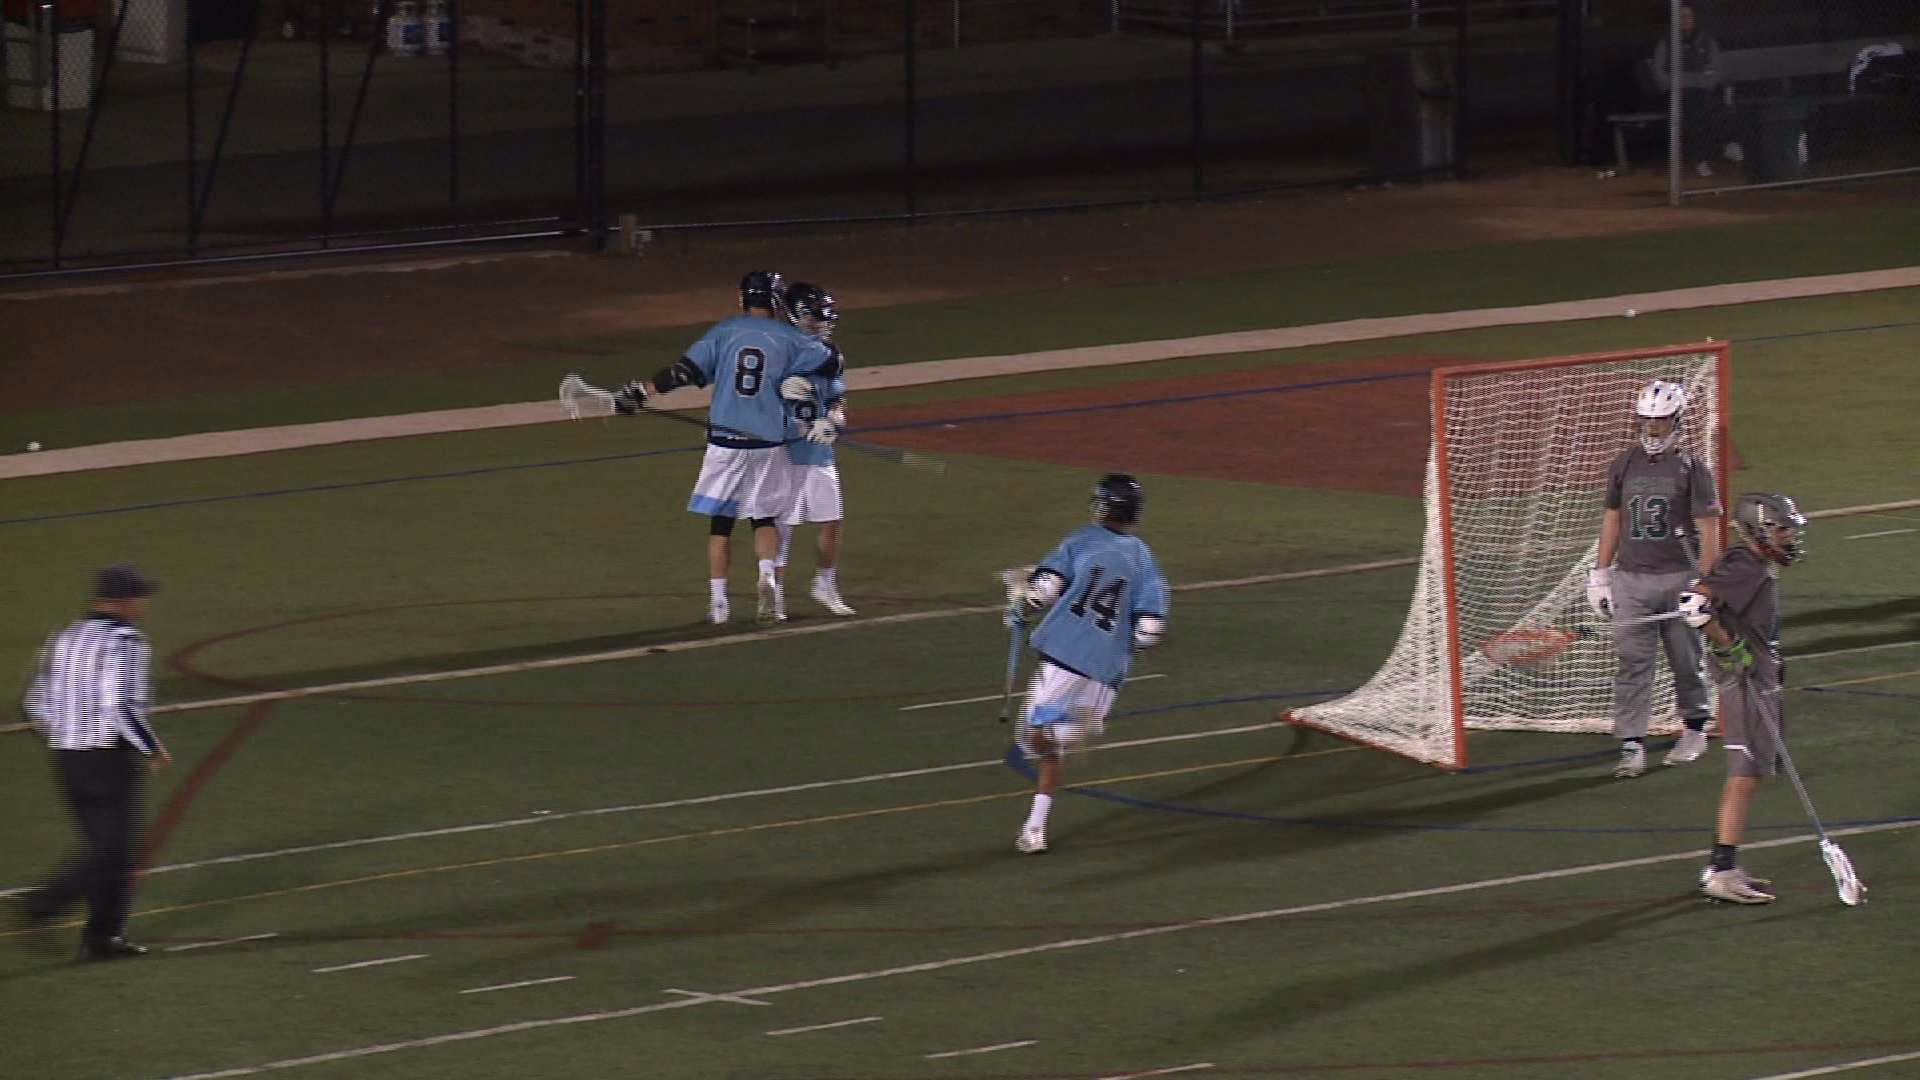 Wayne Valley vs. DePaul boys' lacrosse video highlights